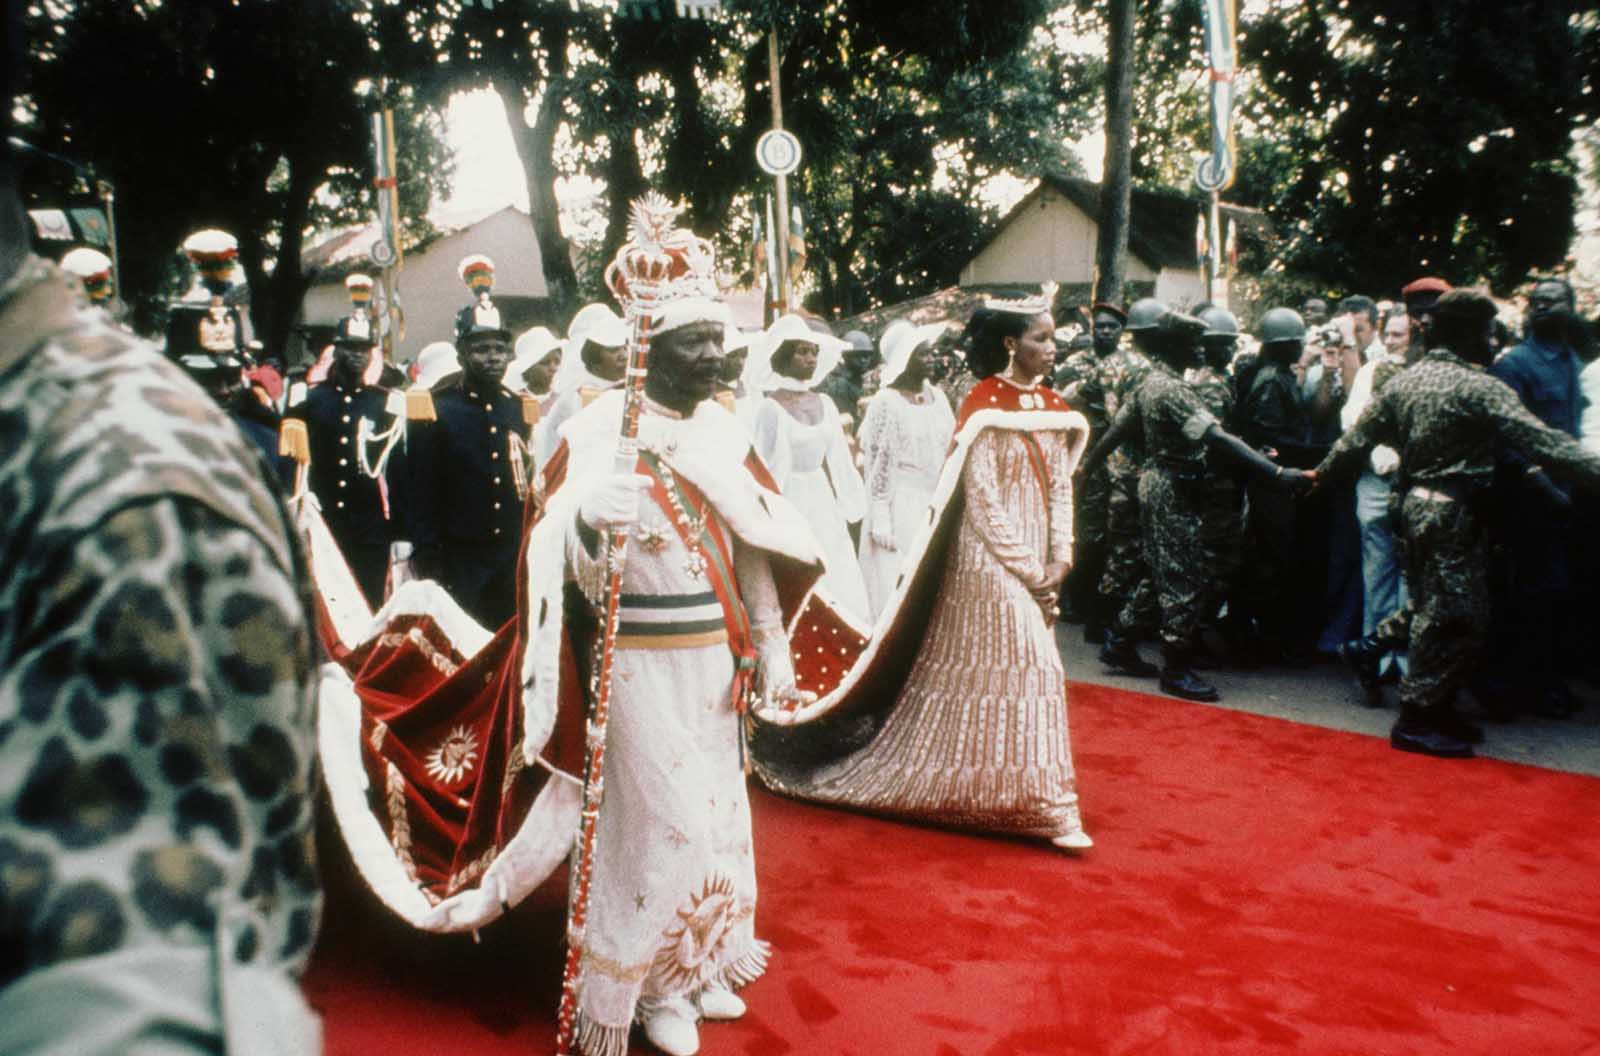 Jean-Bedel Bokassa arriving at the coronation ceremony.